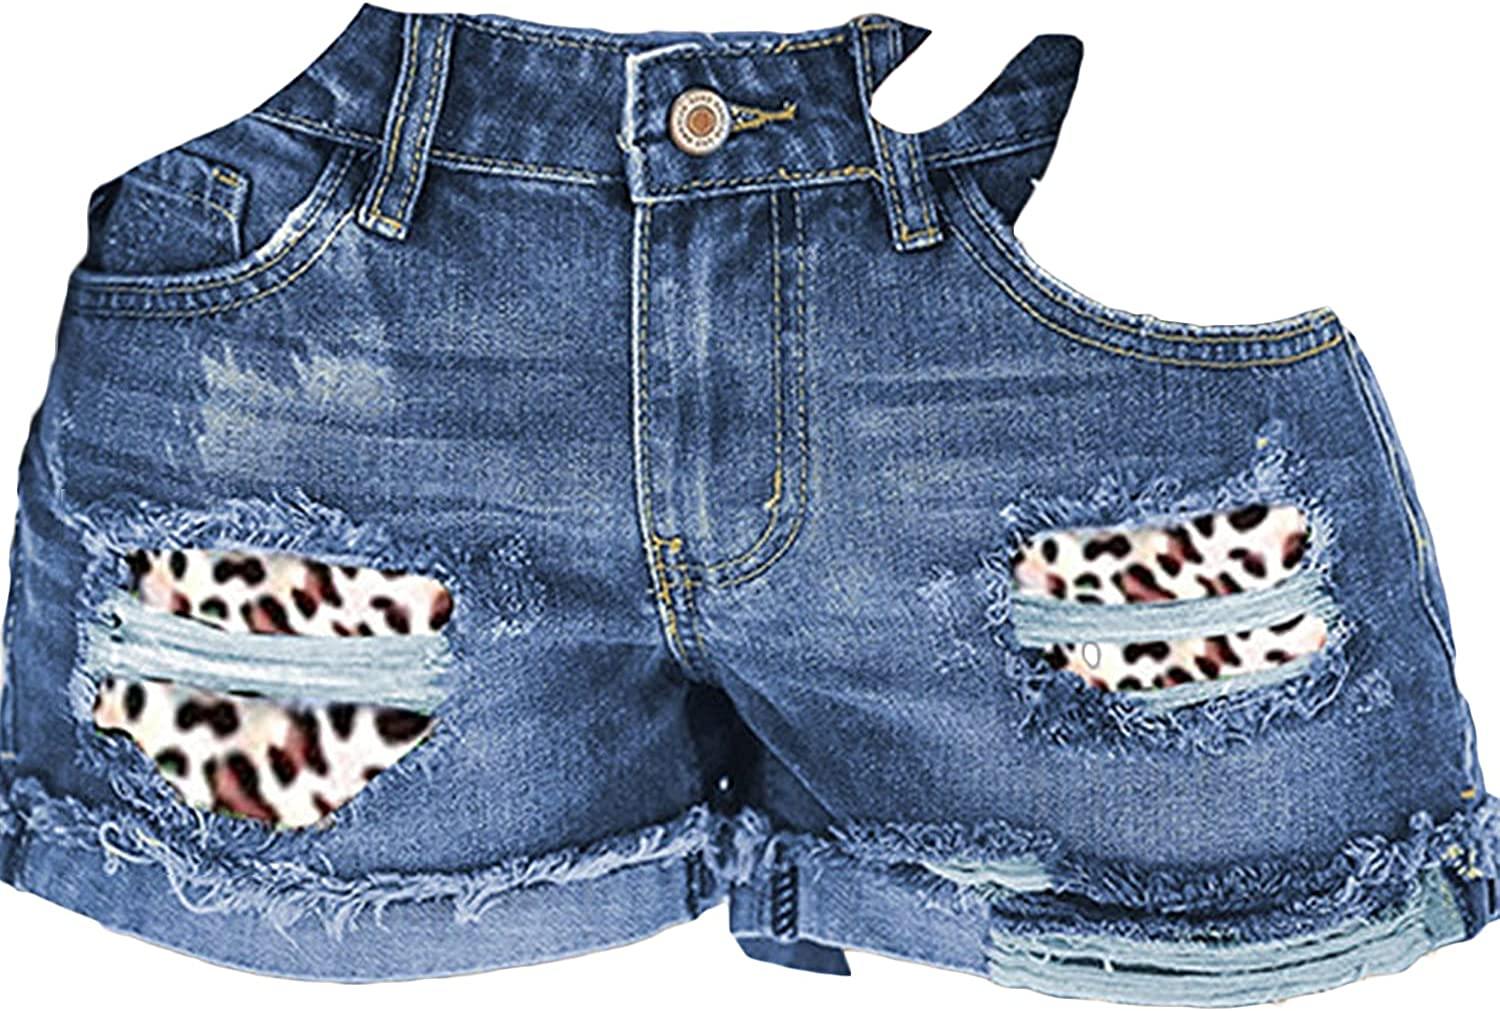 Womens Ripped Patchwork Jean Shorts Mid Rise Baggy Cuffed Holes Denim Shorts Casual Destroyed Rolled Hem Short Jeans